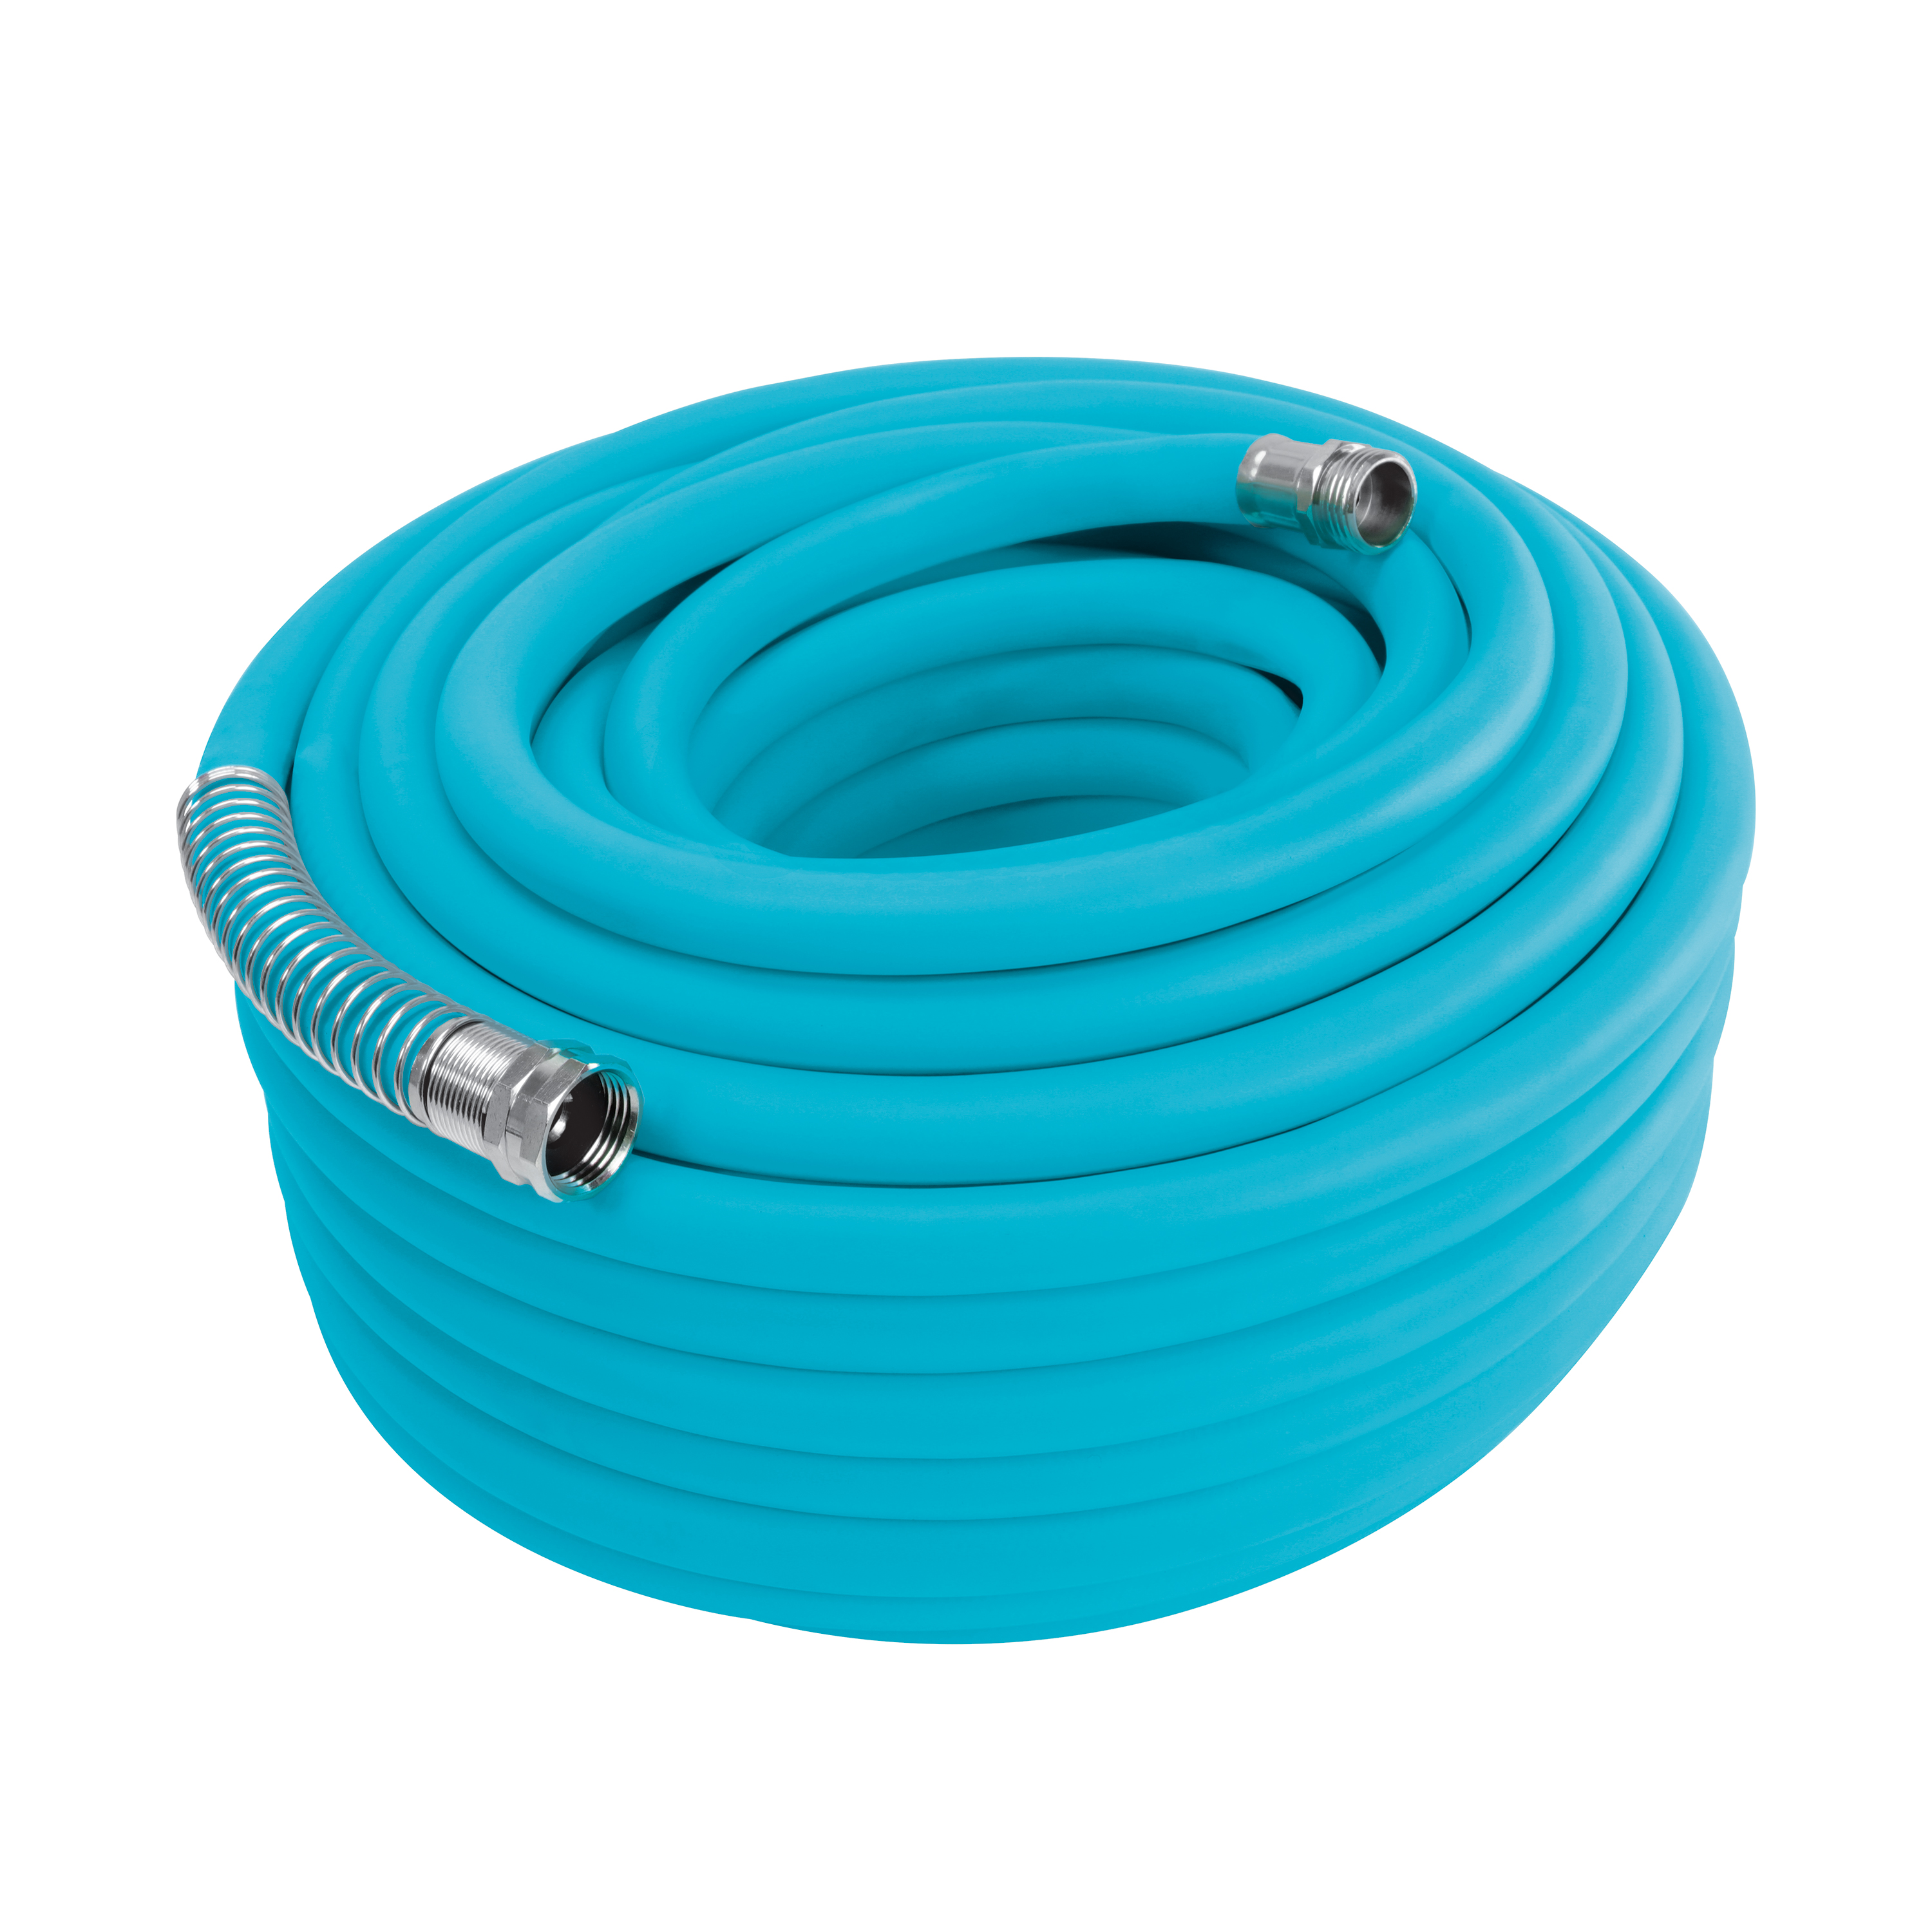 Image of Aqua Joe AJPGH100-DWS Hybrid Polymer FLEX Kink Free Hose | 5/8 In | 100 Ft.